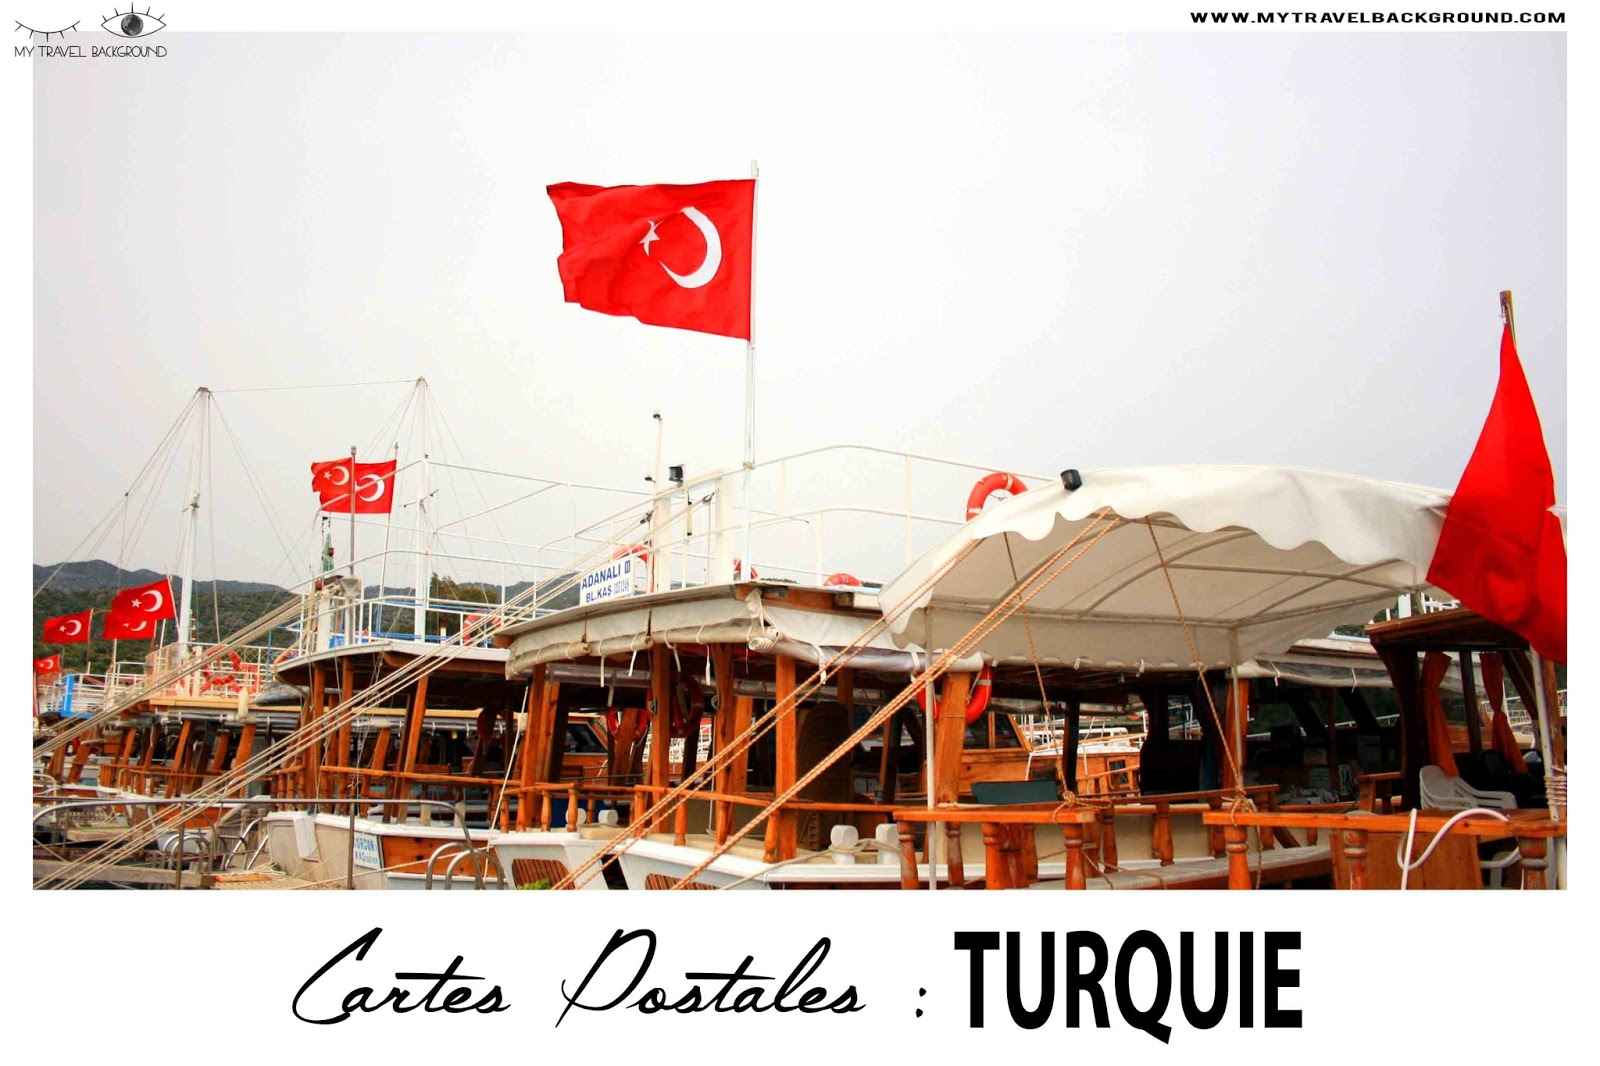 My Travel Background : Cartes Postale Turquie